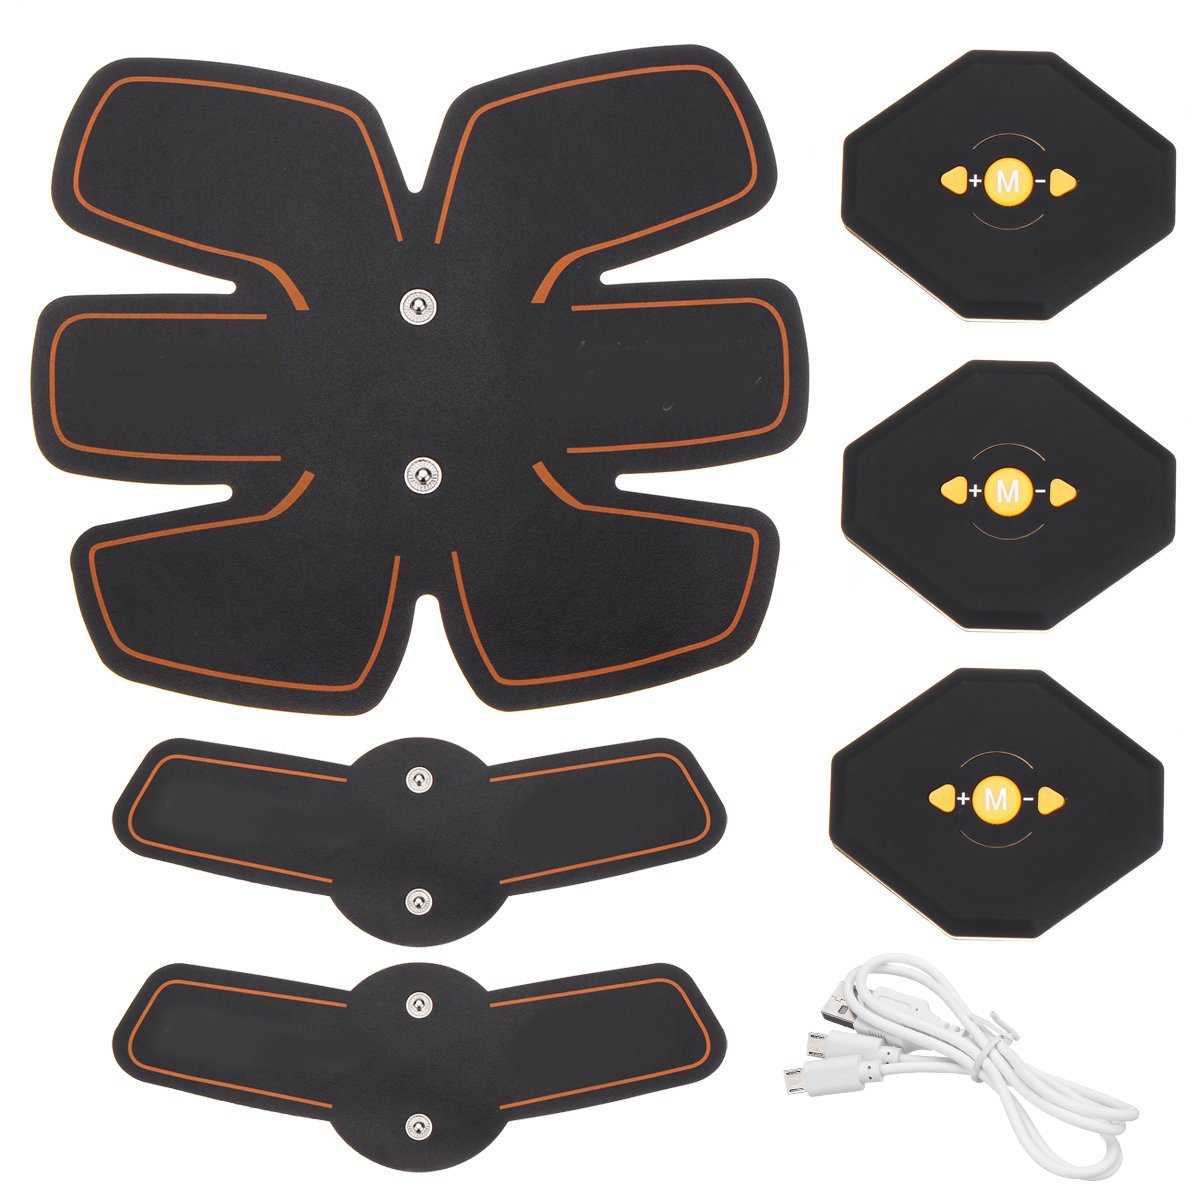 Abdomen+Arm Lap Abs Muscle Stimulator Toning Belt Training Exercise Fitness Electrical Body Shape Trainer ABS Set